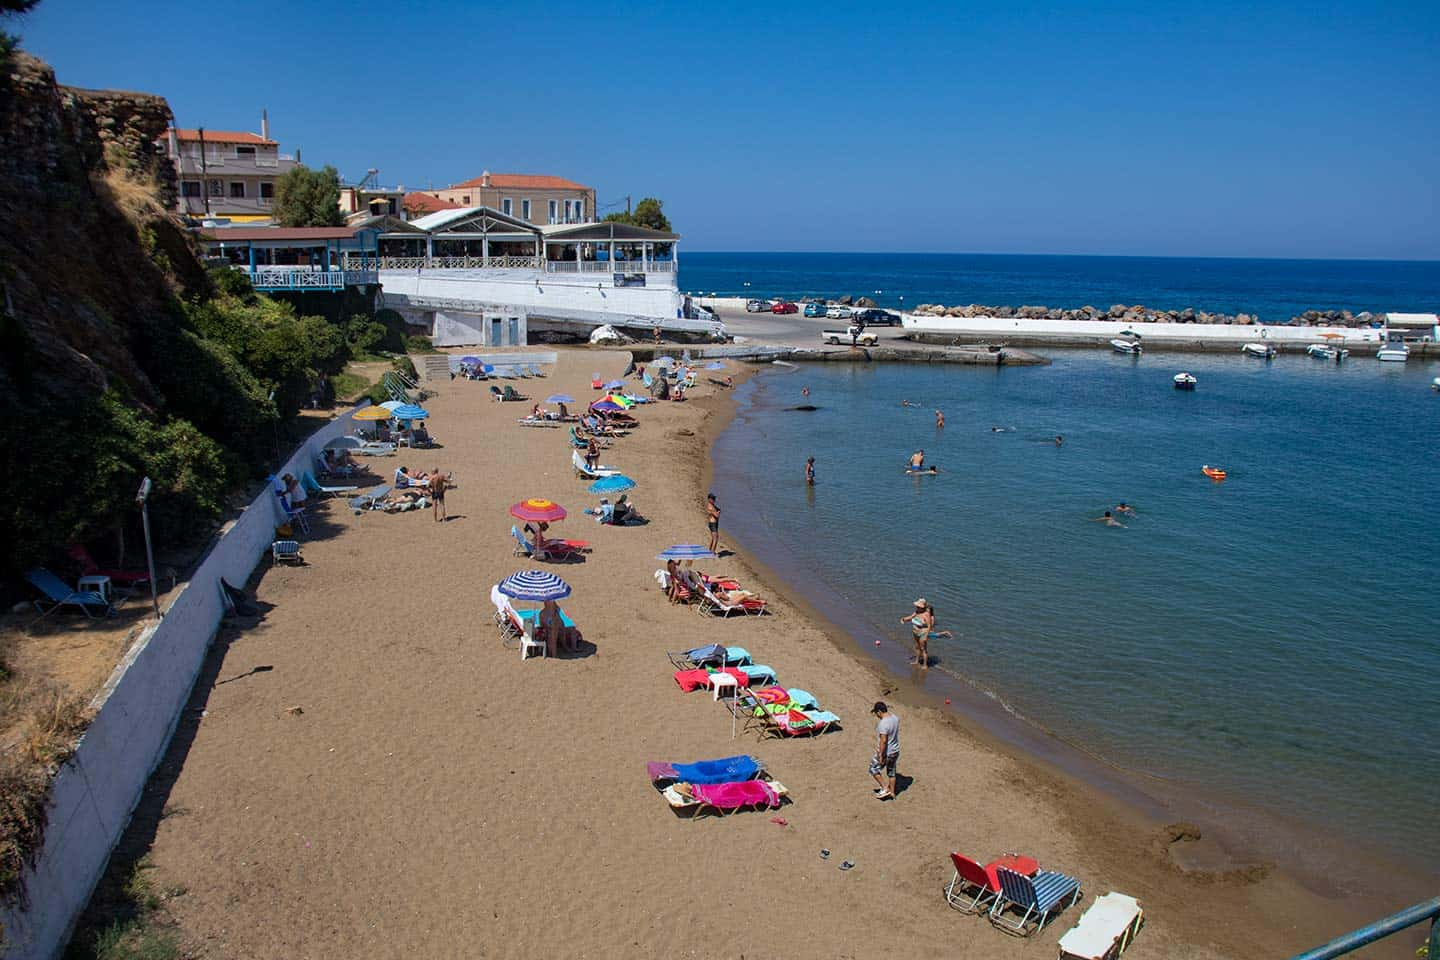 Image of one of the beaches in Panormos Crete